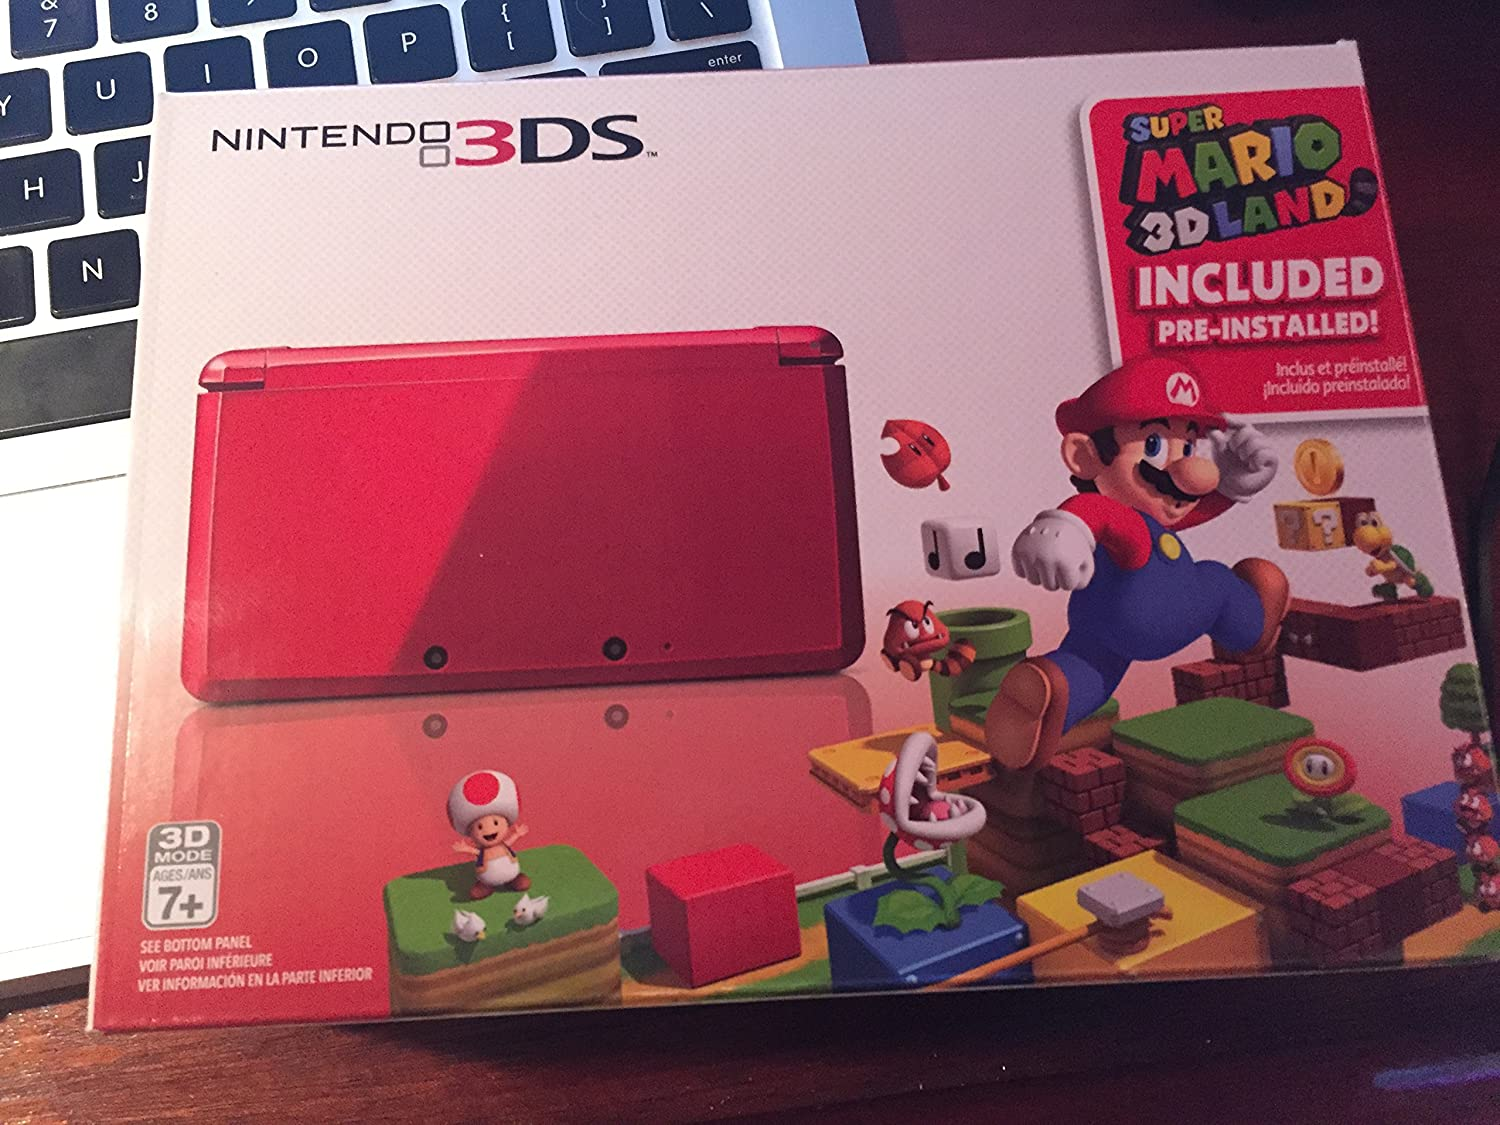 Nintendo 3DS with Super Mario 3D Land – Flame Red